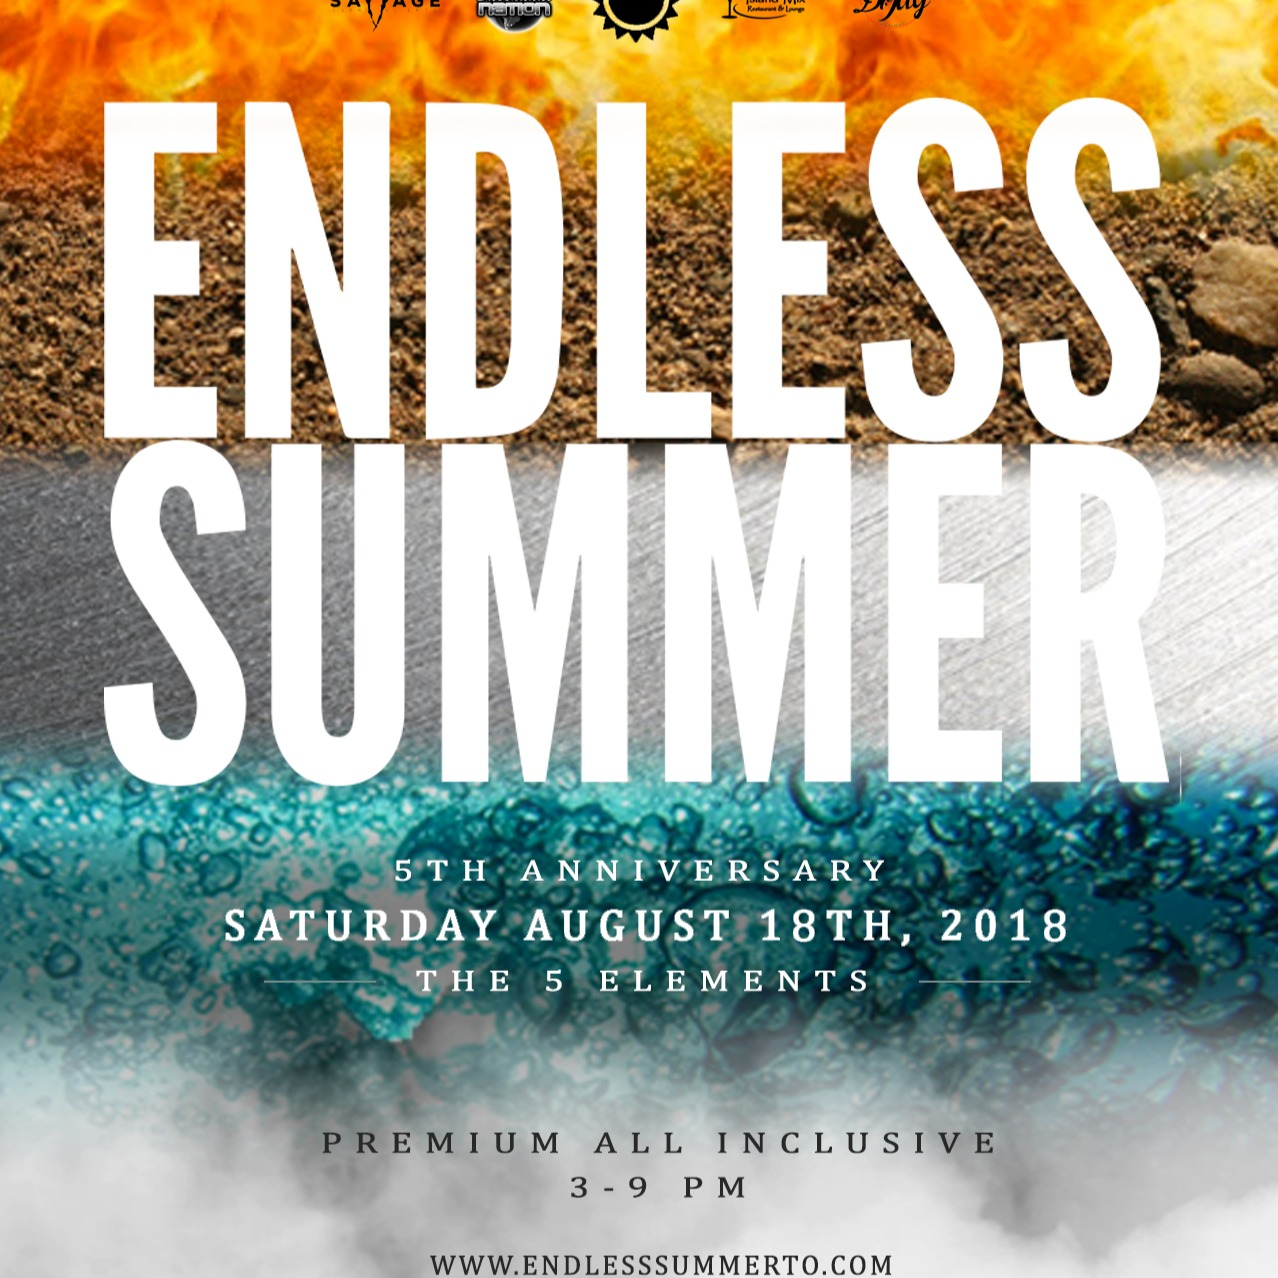 Endlesss Summer| The 5 Elements